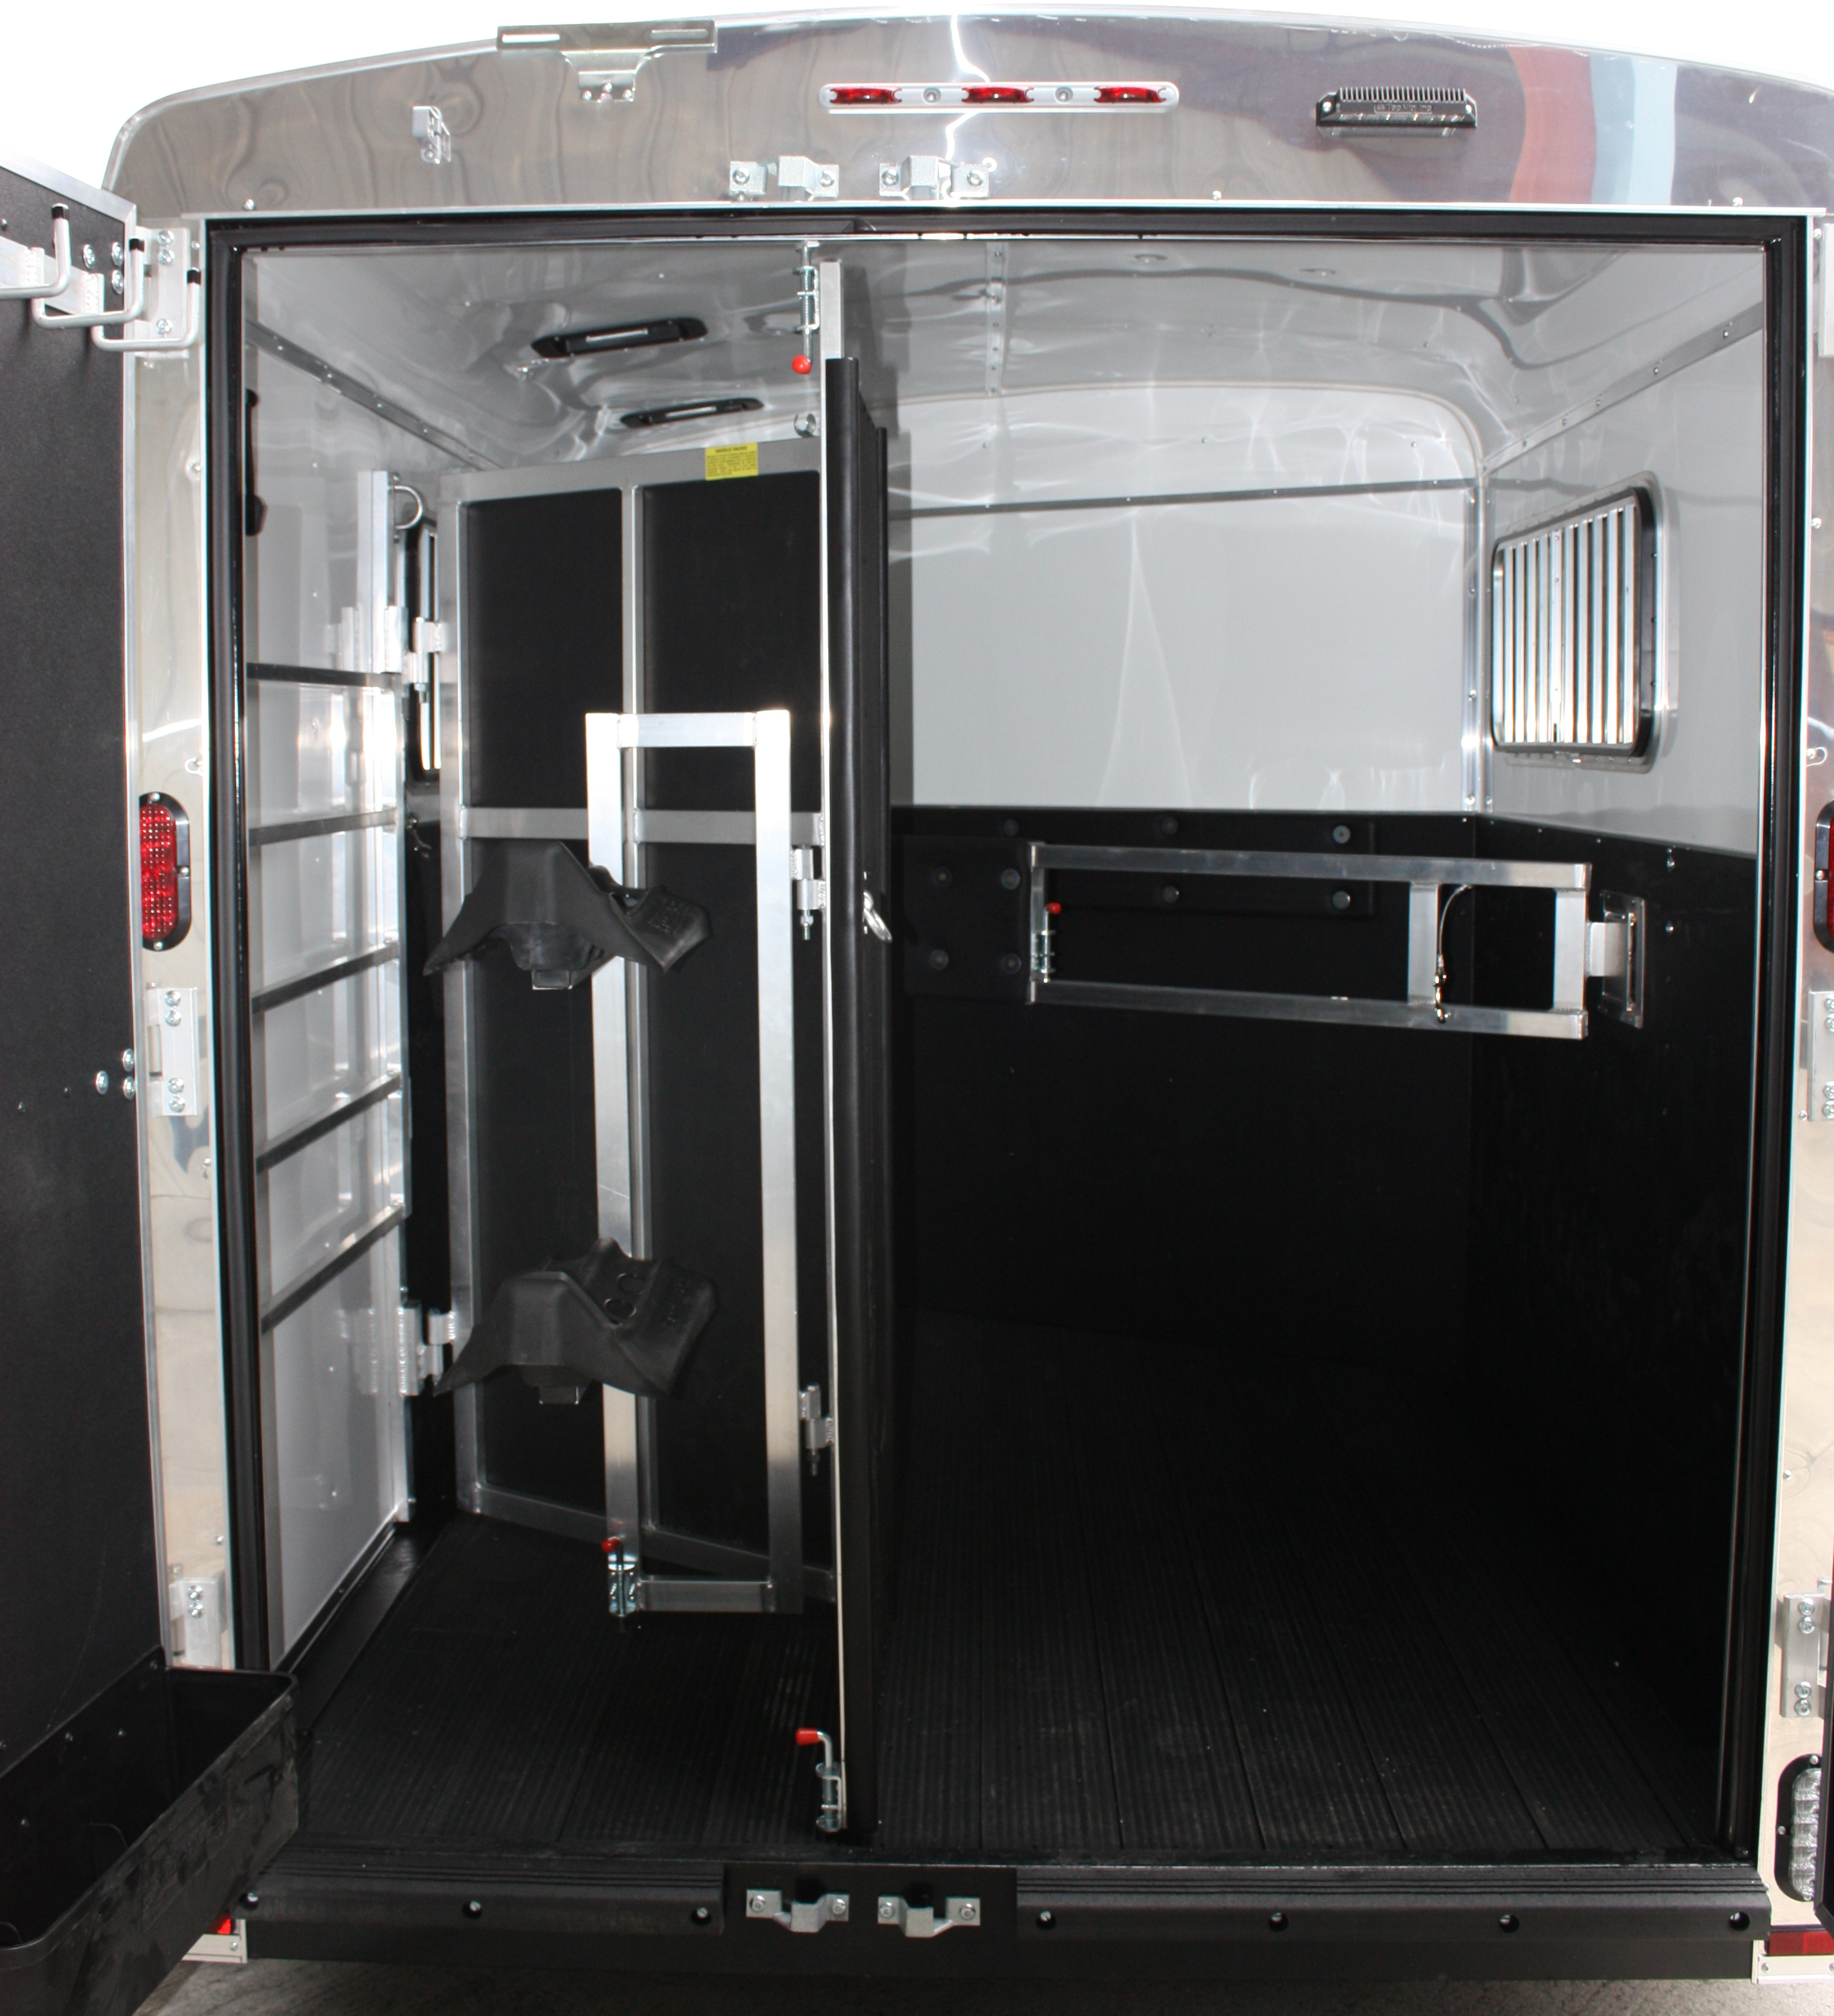 trailer inspirational camper rv awning led awnings extension of sale horse tent alberta for lights